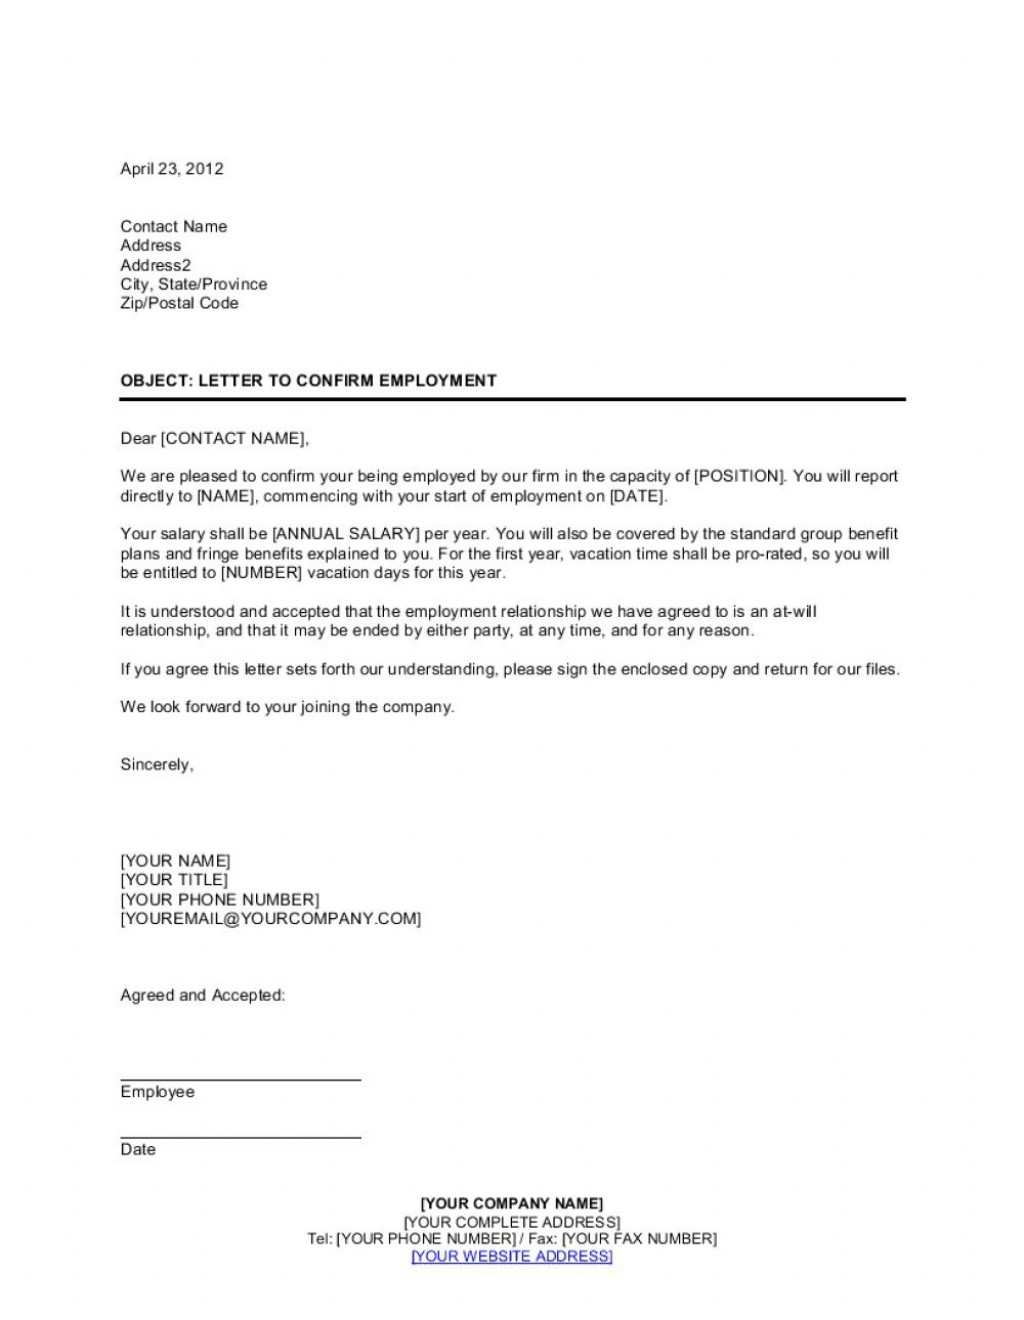 004 Impressive Letter Of Employment Template High Resolution  Confirmation Canada For MortgageLarge